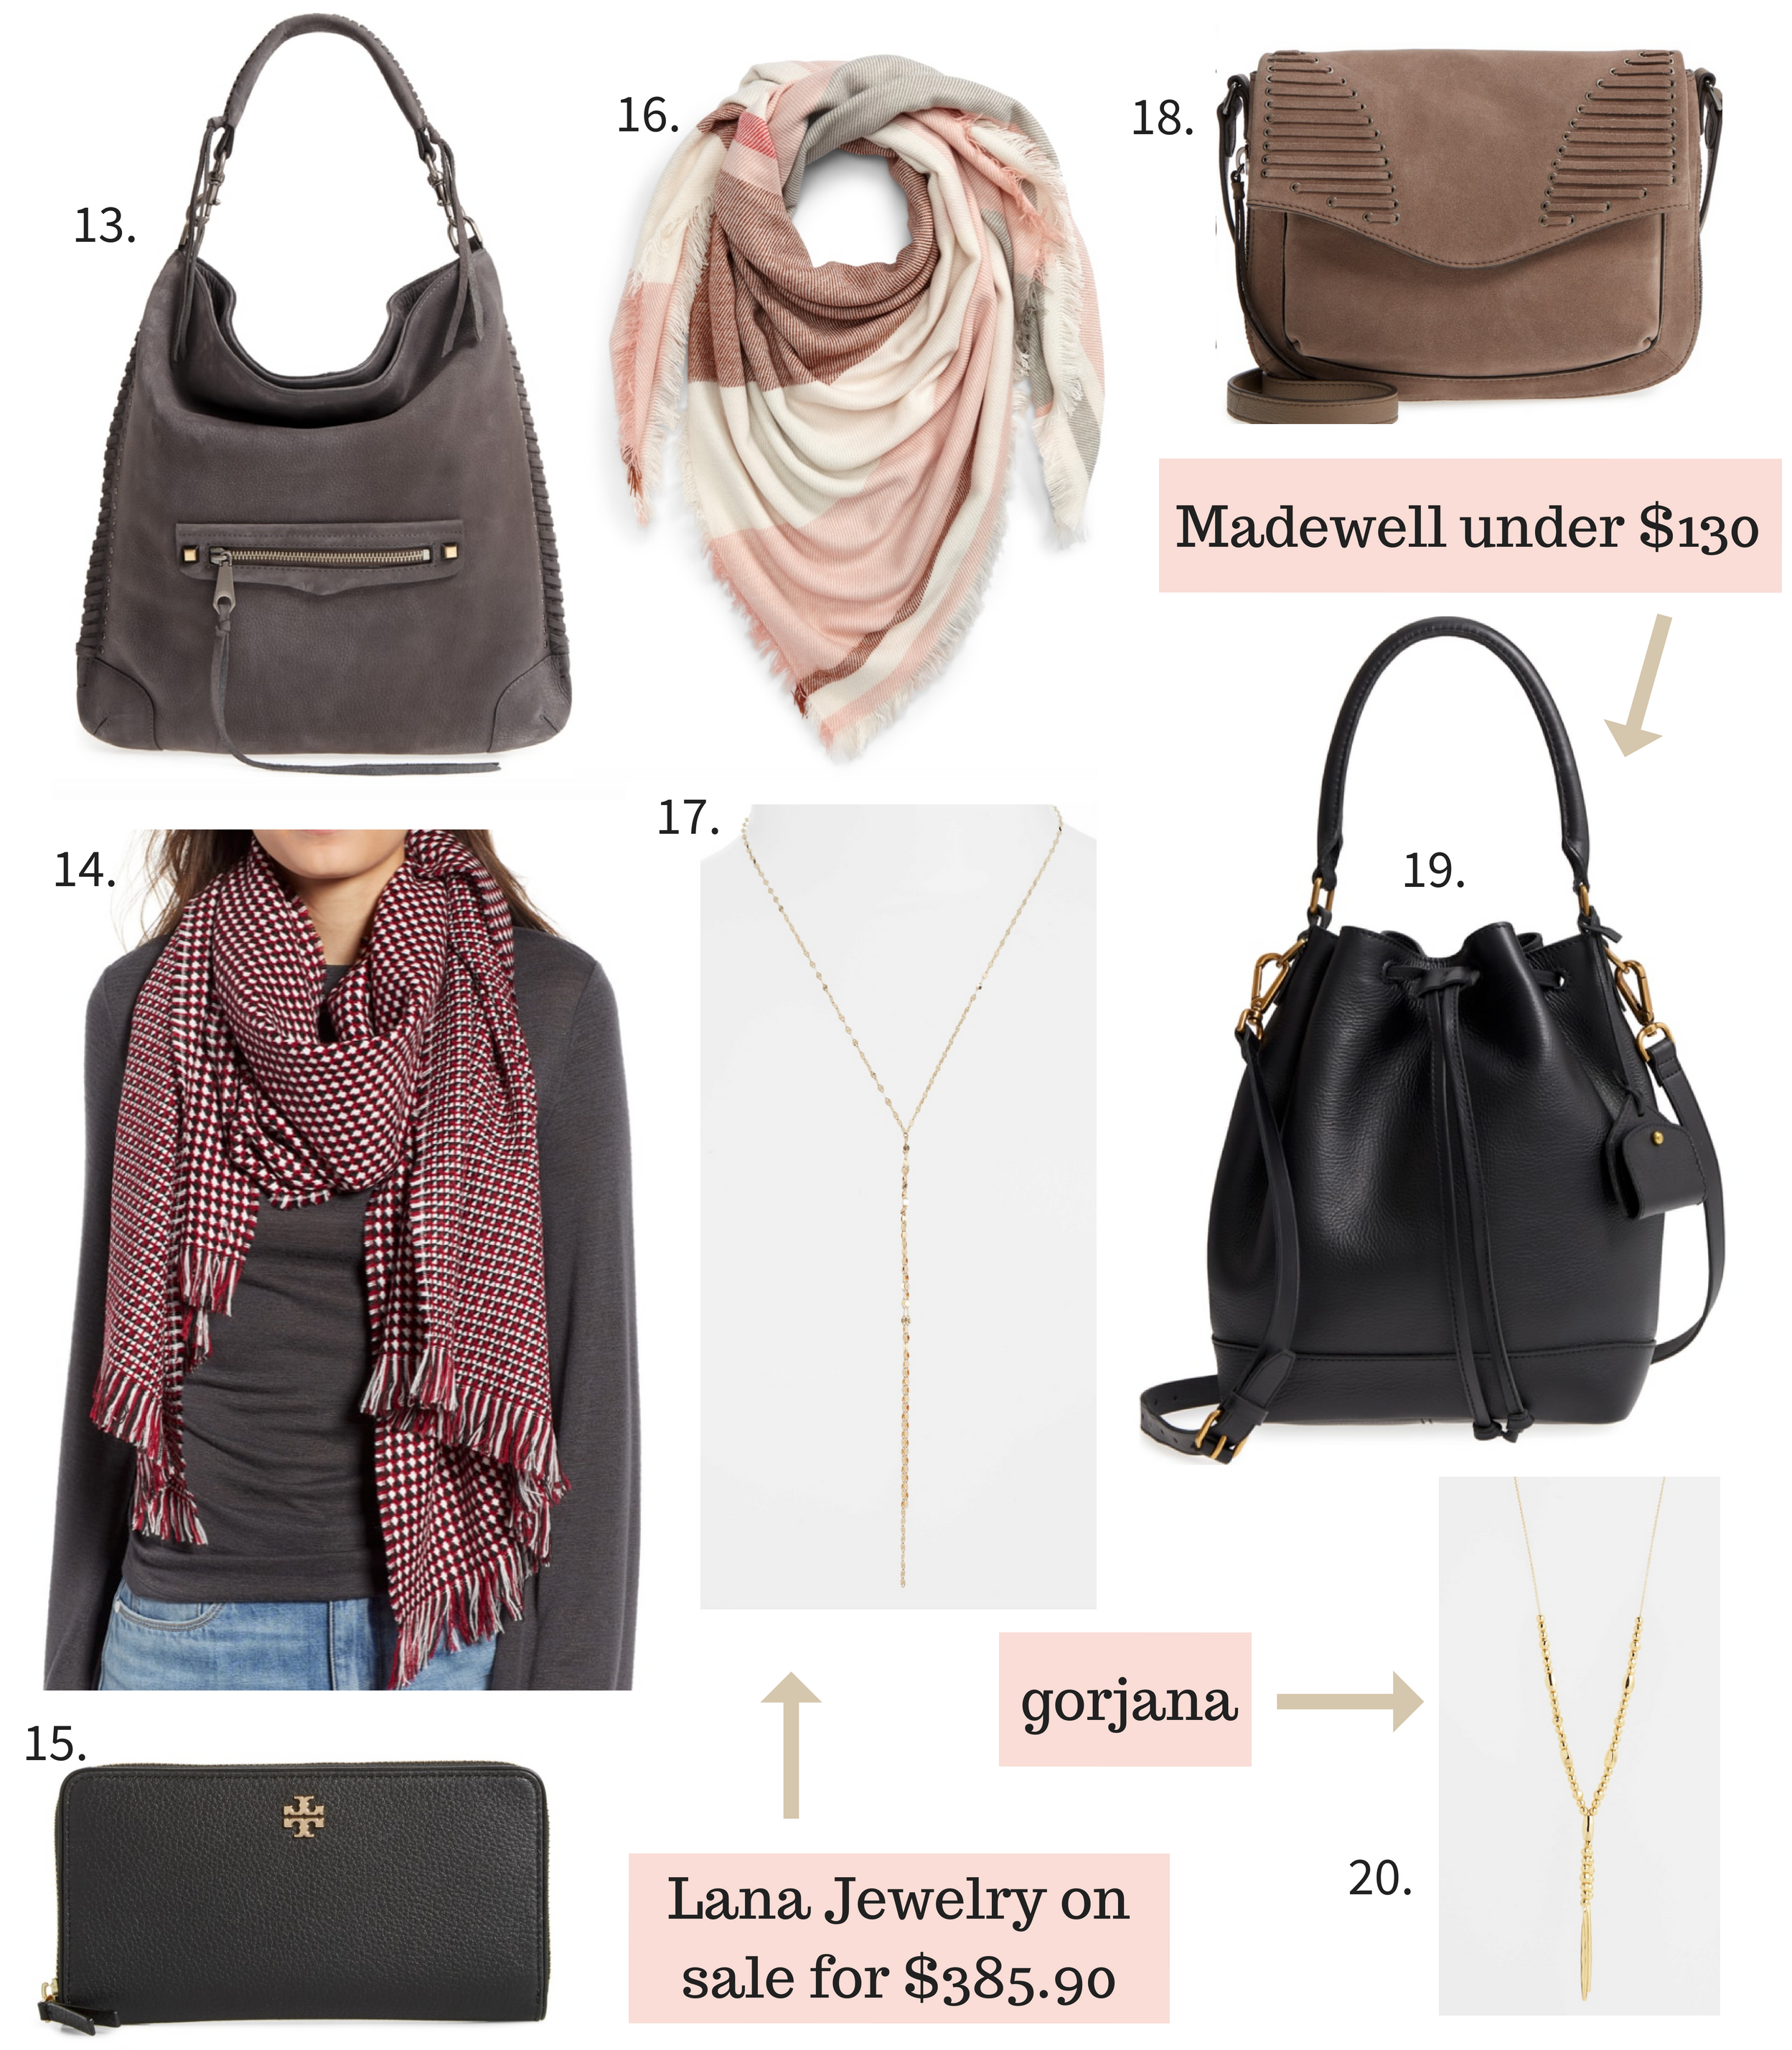 Nordstrom Anniversary Sale 2018 handbags and accessories.